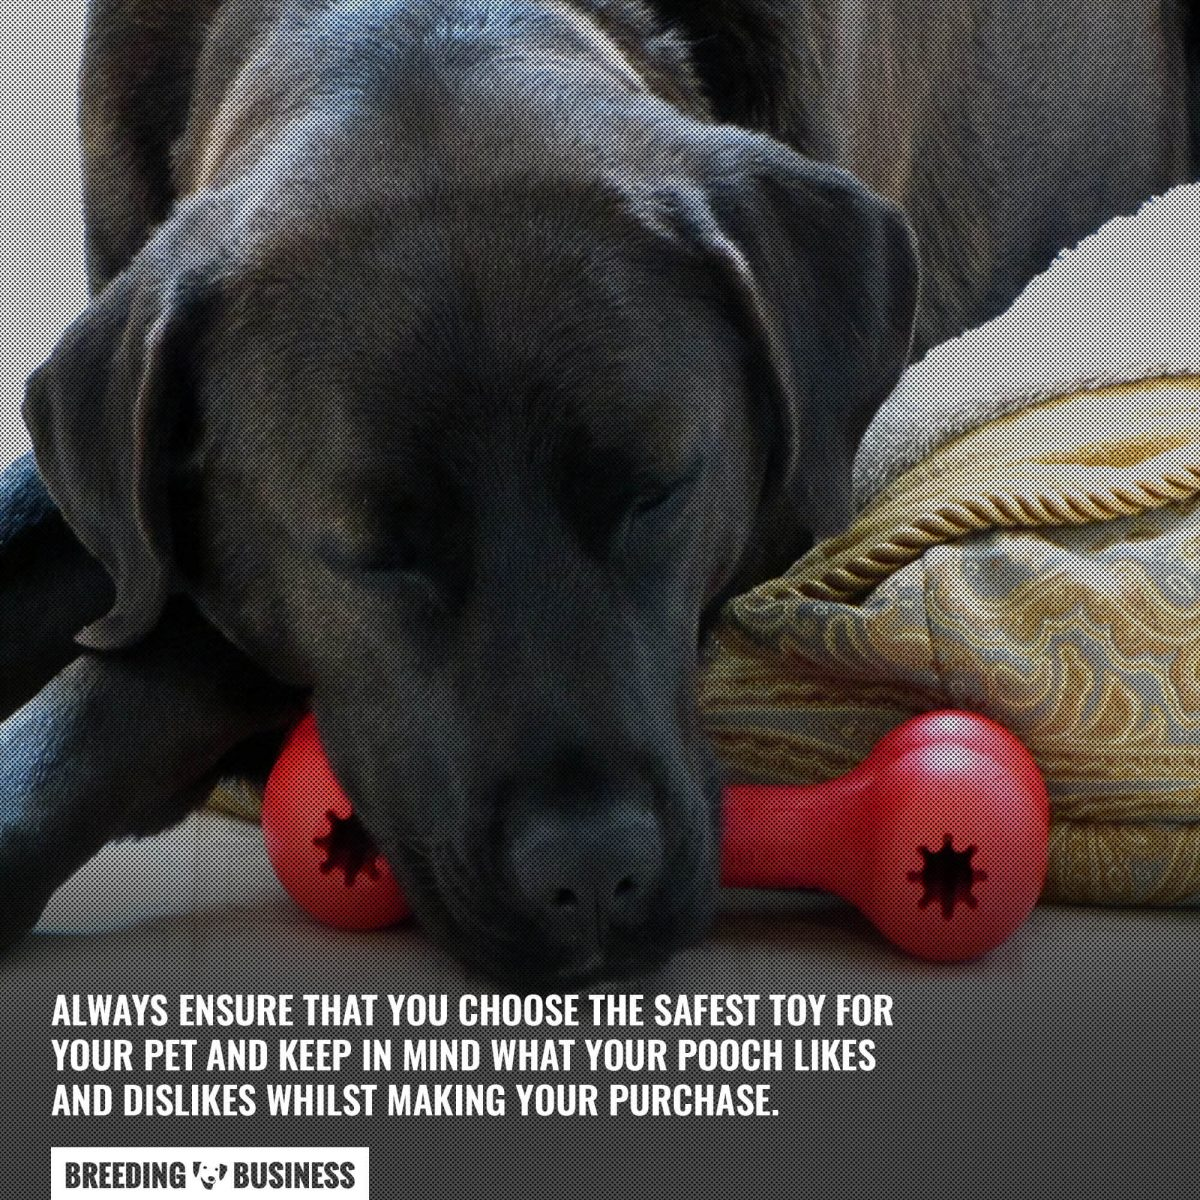 choosing a stimulating toy for your dog